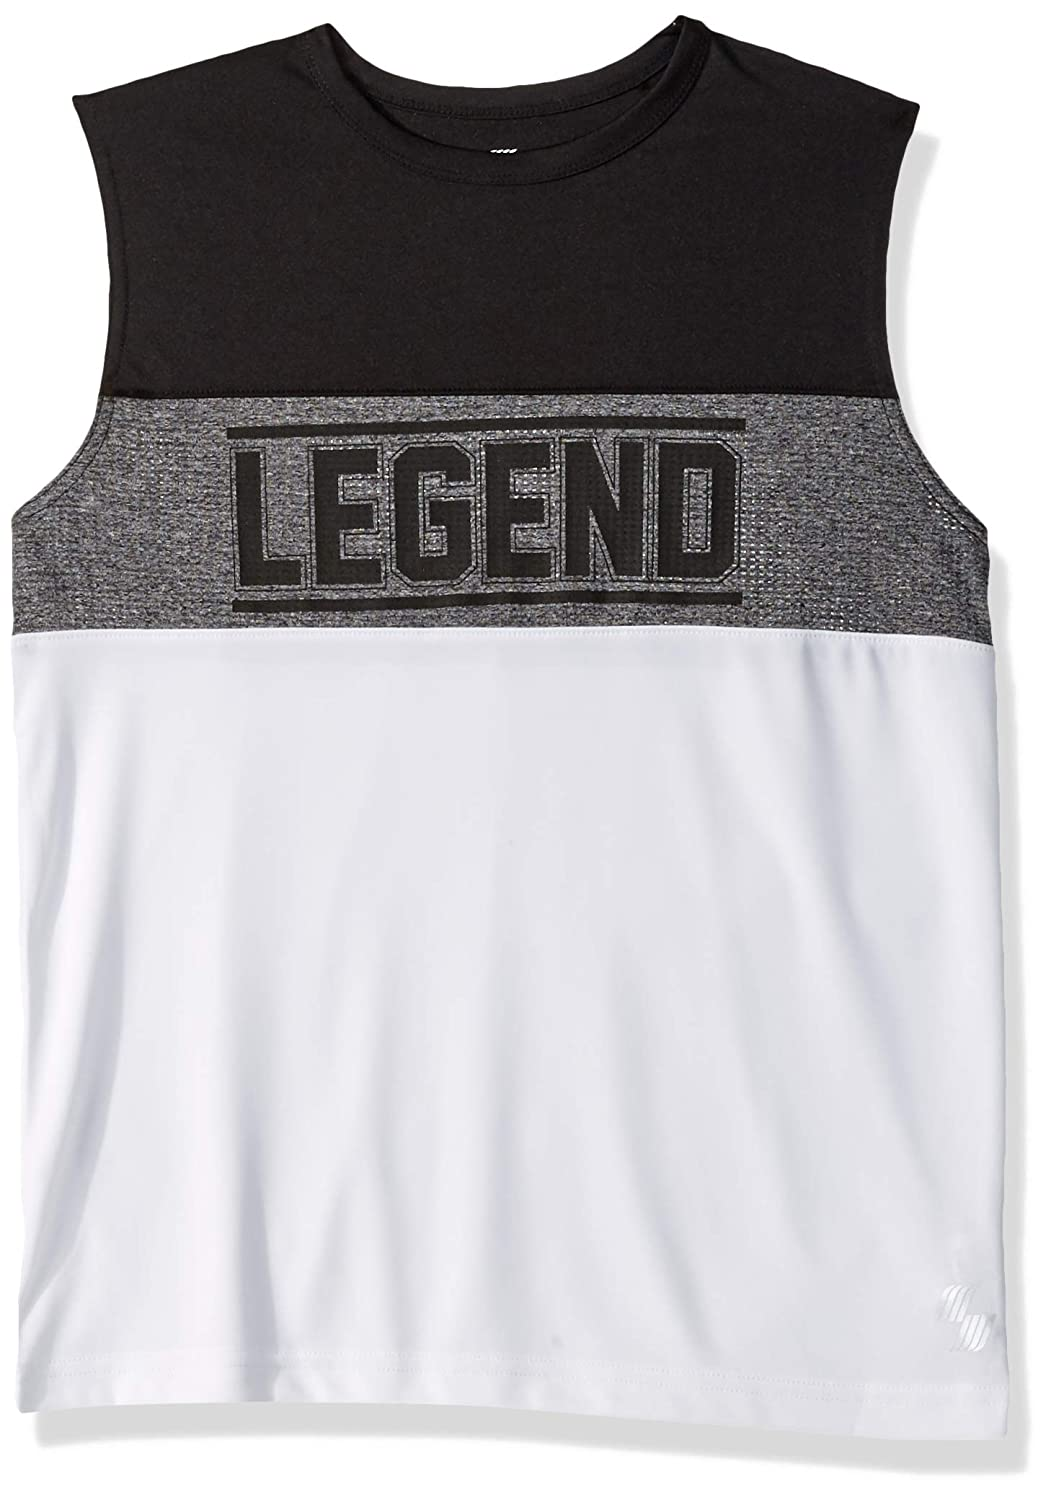 The Childrens Place Boys Big Tank Top